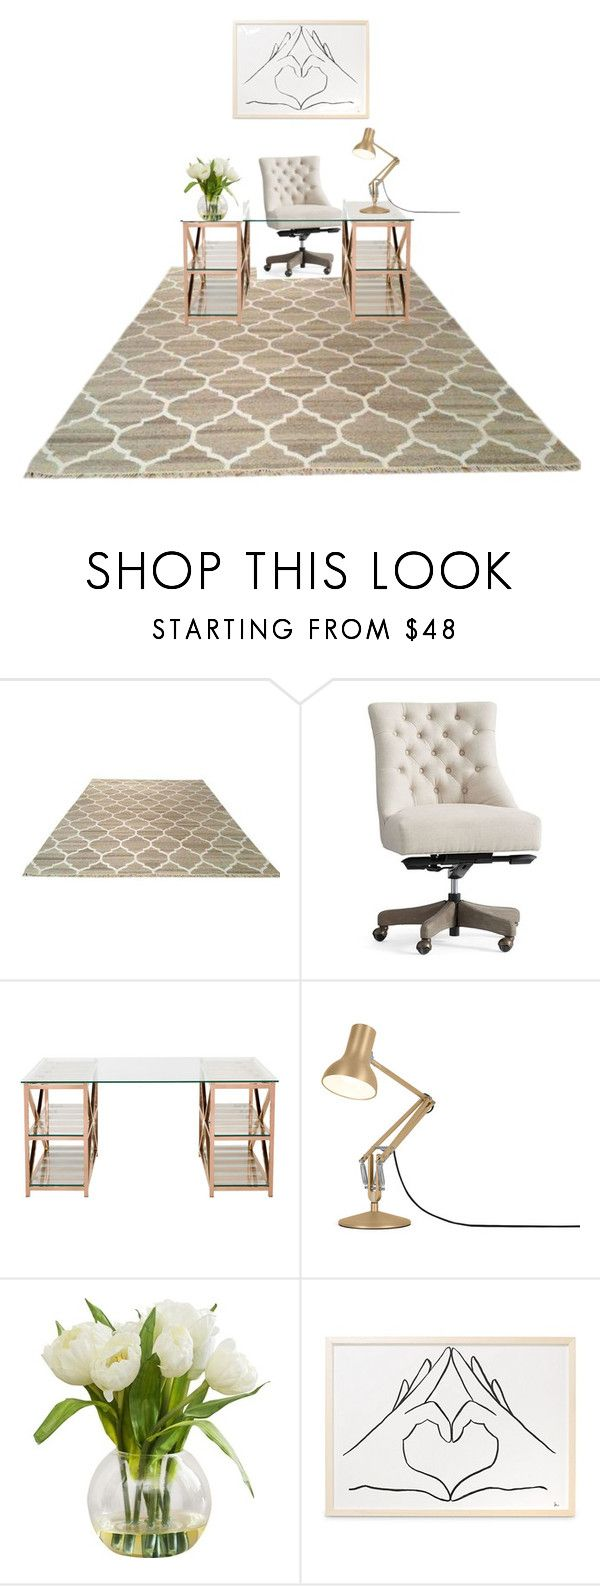 """Dream desk"" by pipermiller ❤ liked on Polyvore featuring interior, interiors, interior design, home, home decor, interior decorating, Pottery Barn, Safavieh and Anglepoise"